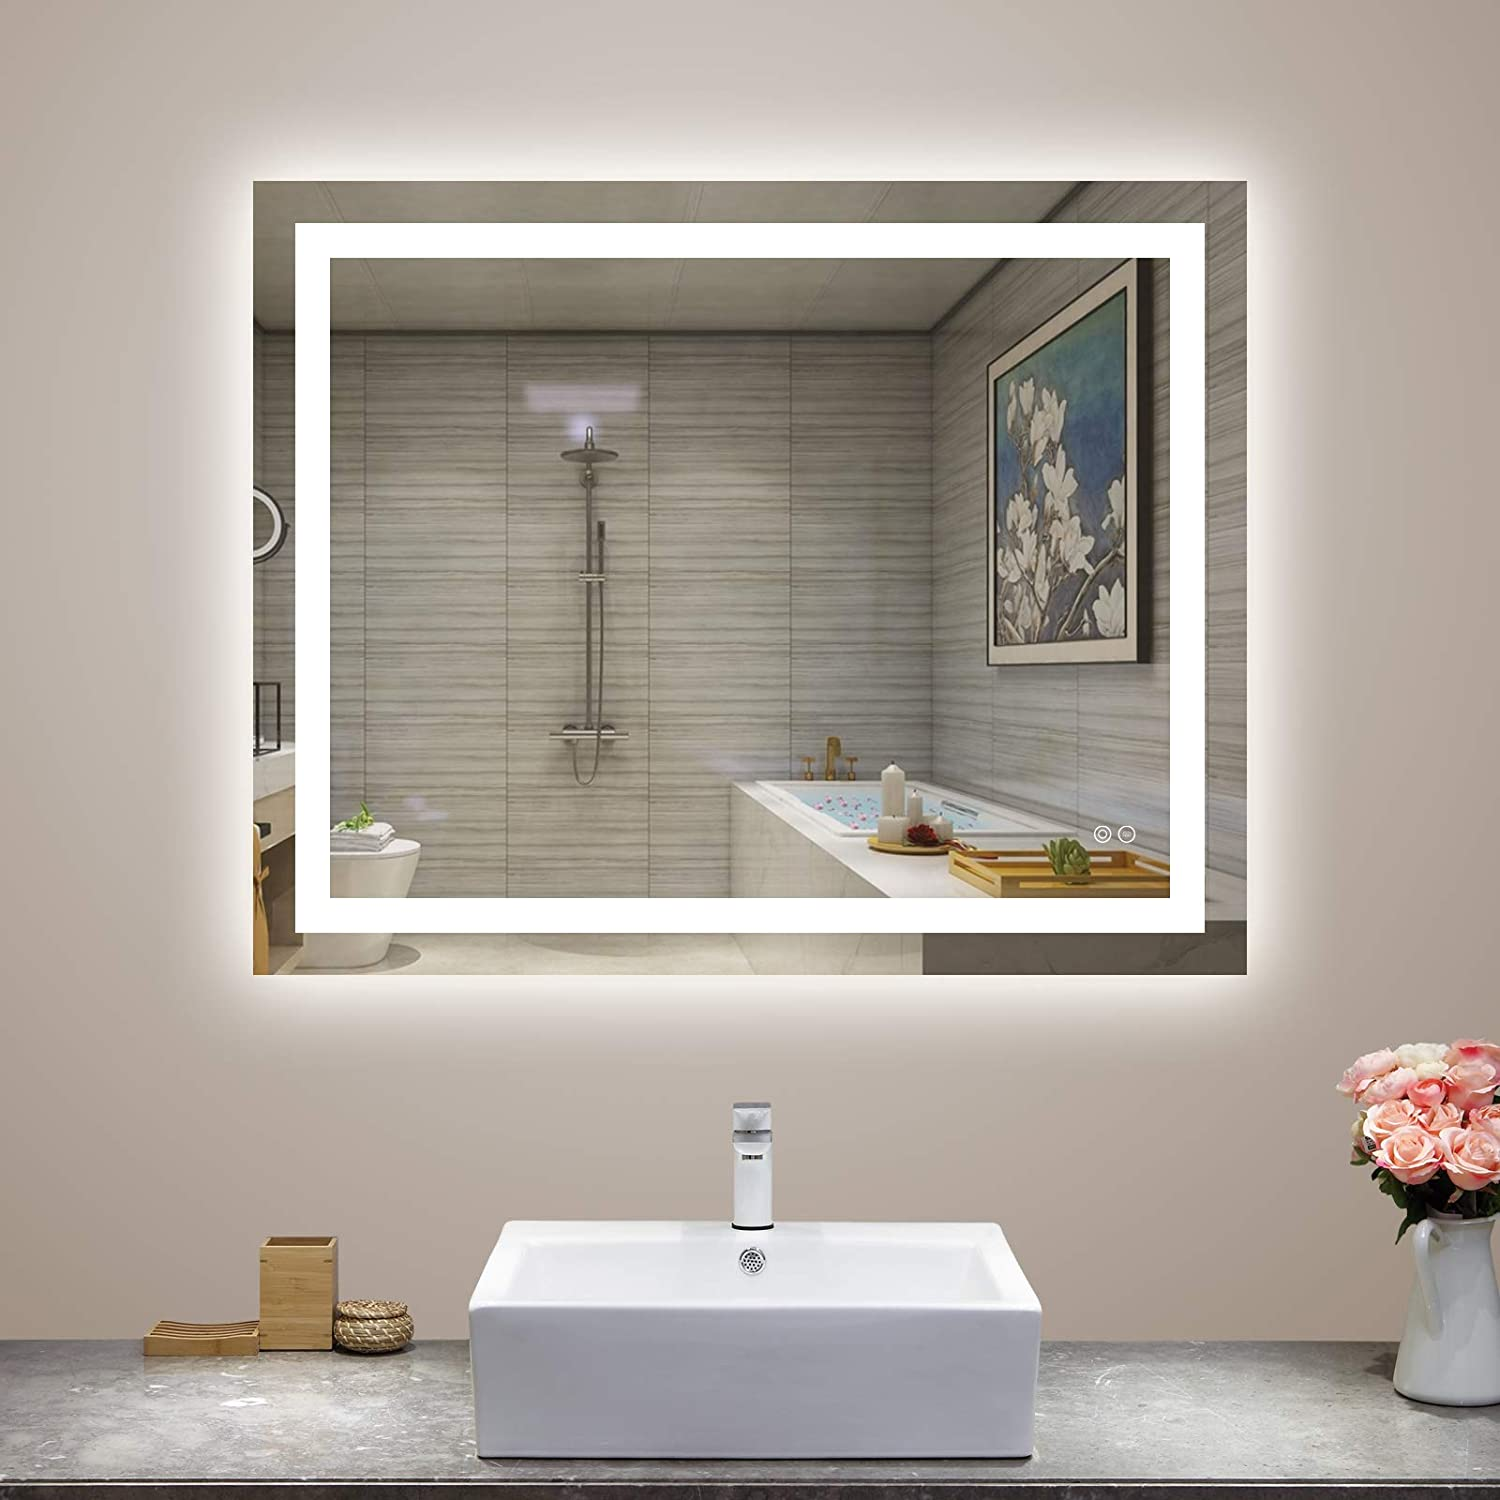 UM 28x36 inch LED Vanity Bathroom Mirror, Wall Mounted Bathroom Lighted Mirror, Dimmable Touch Switch Control, CRI>90, 6000K Warm White/Natural/Daylight Lights, Horizontal & Vertical(28Wx36H)